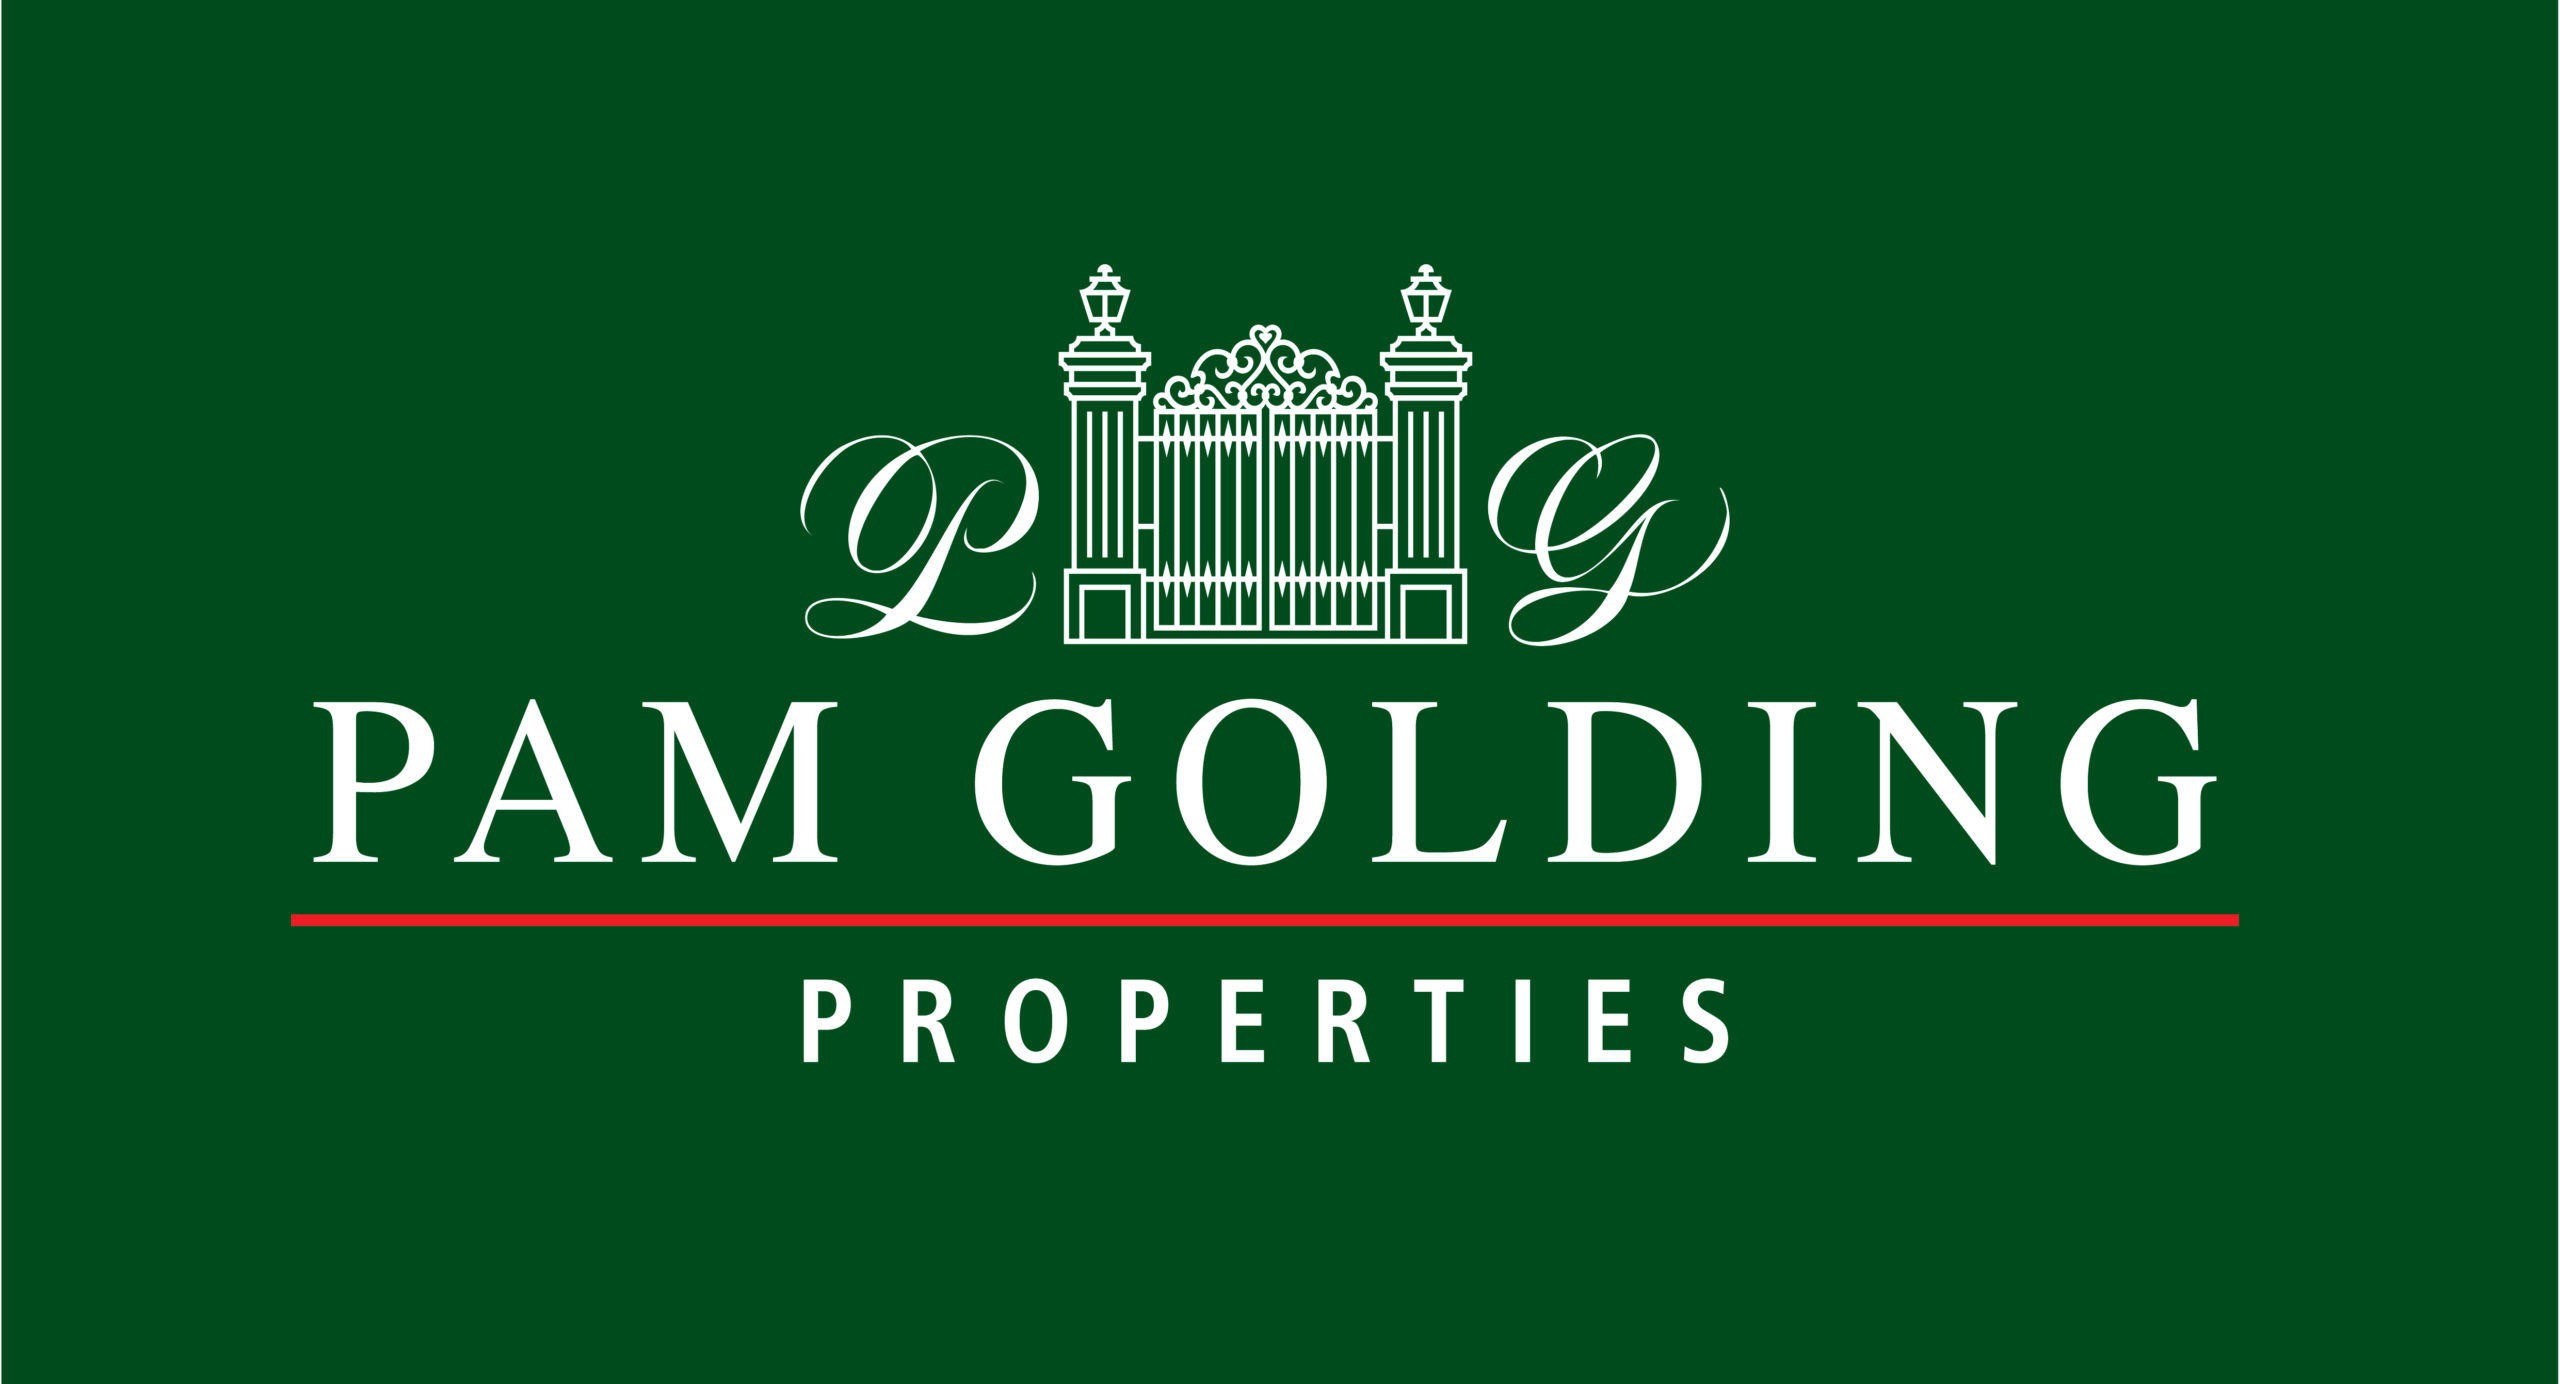 You are currently viewing Pam Golding Properties: Estate Agent Intern